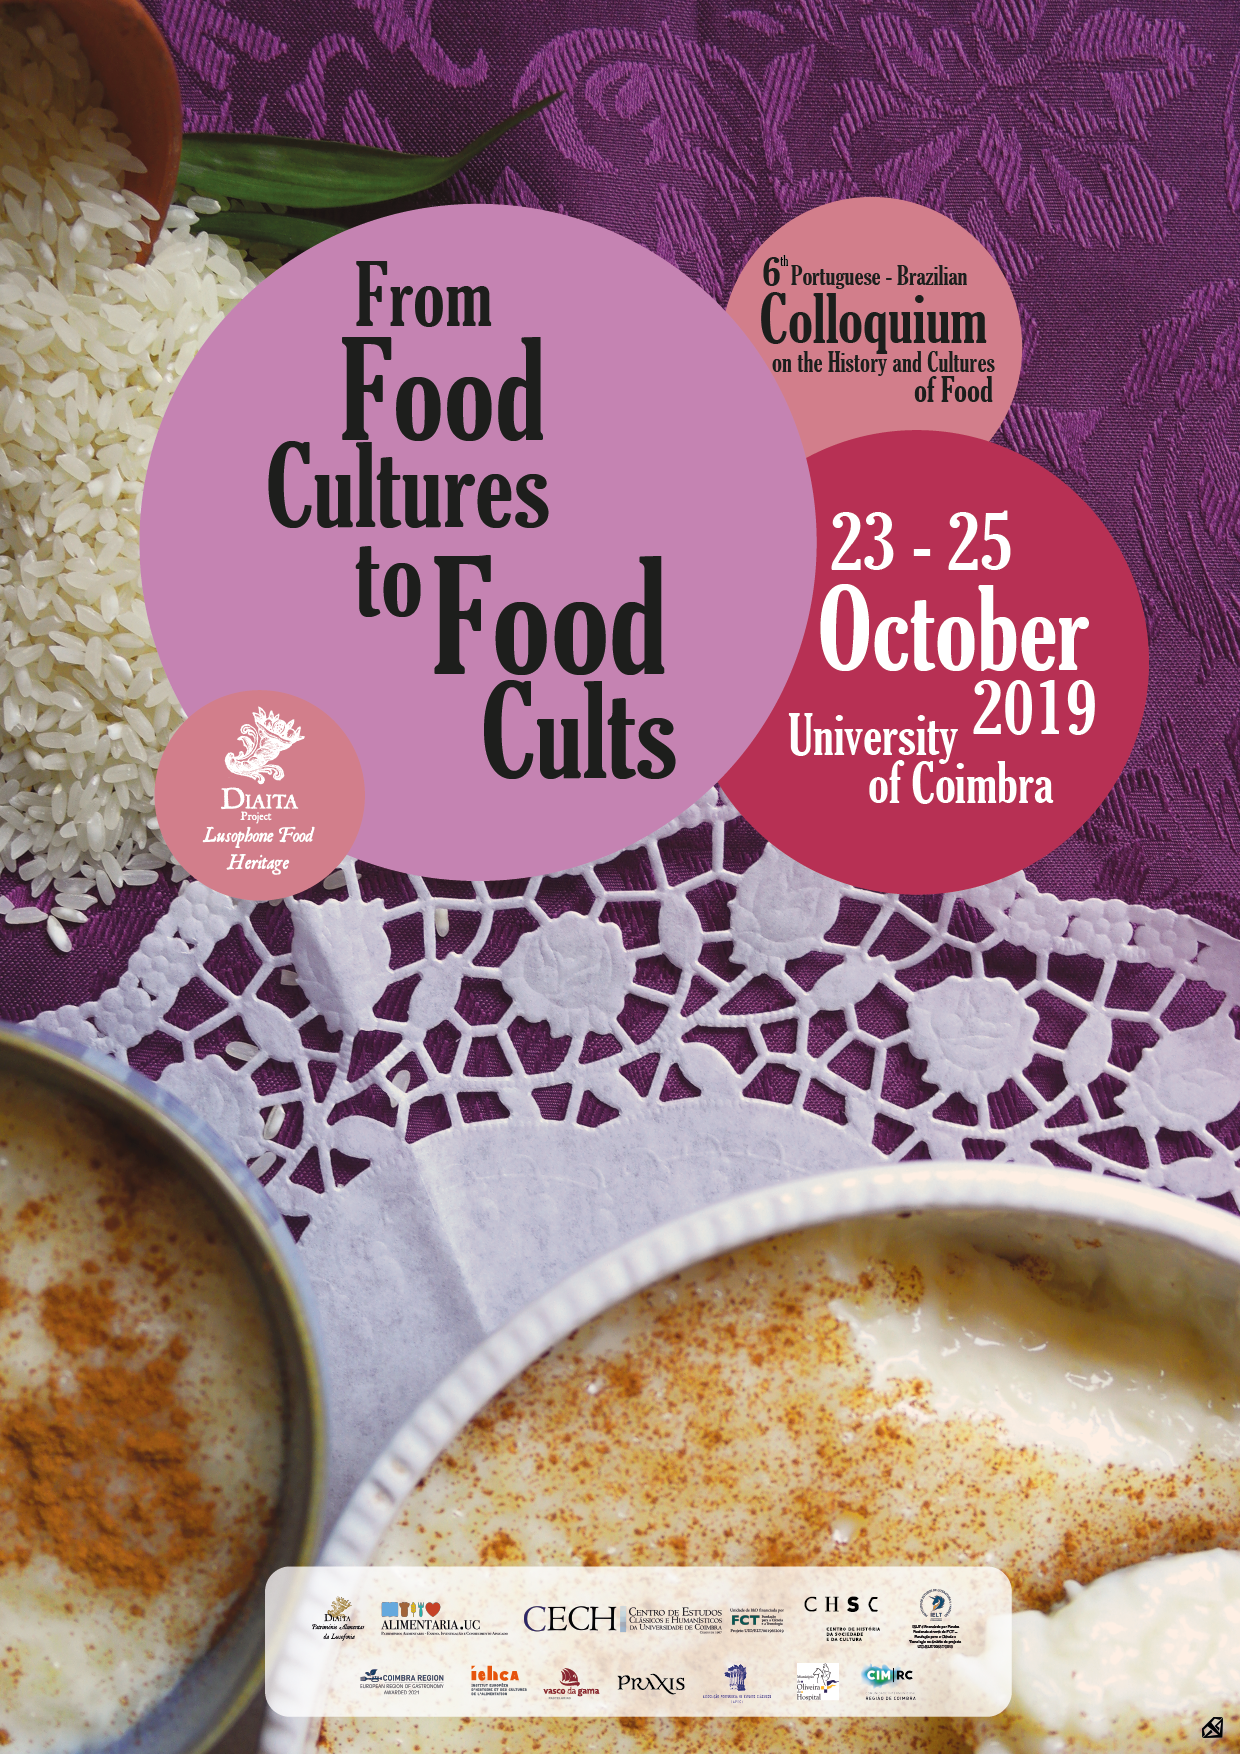 DIAITA – 6TH PORTUGUESE-BRAZILIAN COLLOQUIUM ON THE HISTORY AND CULTURES OF FOOD – FROM FOOD CULTURES TO FOOD CULTS